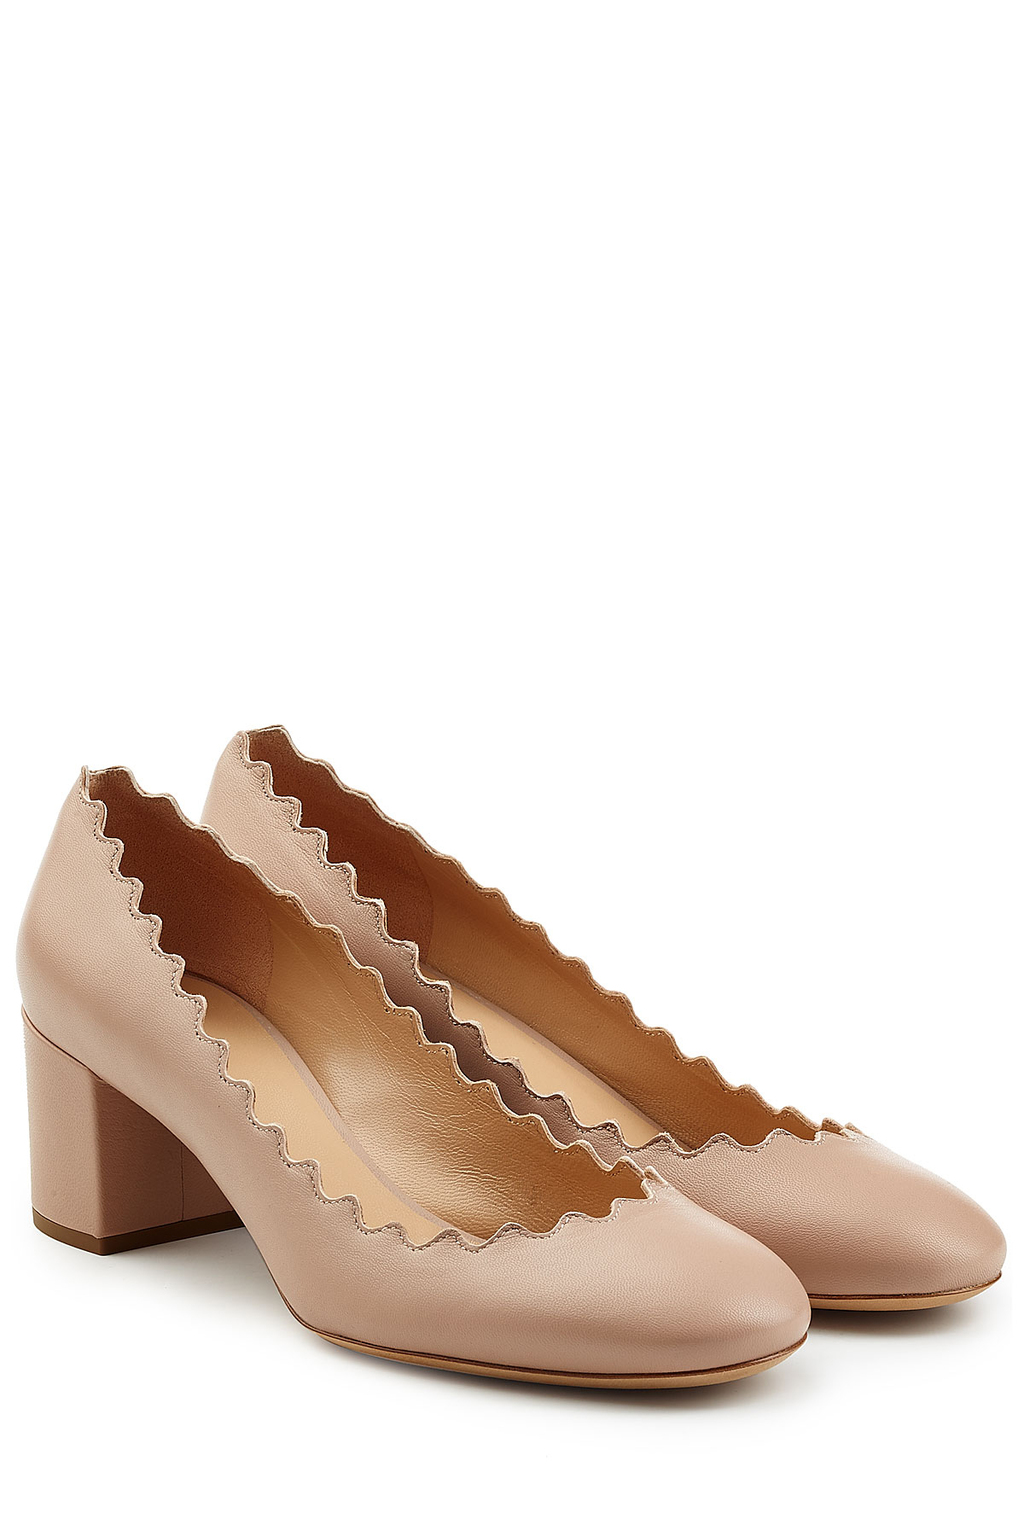 Leather Pumps Beige - predominant colour: tan; occasions: casual, evening; material: leather; heel height: mid; heel: block; toe: round toe; style: courts; finish: plain; pattern: plain; season: s/s 2016; wardrobe: highlight